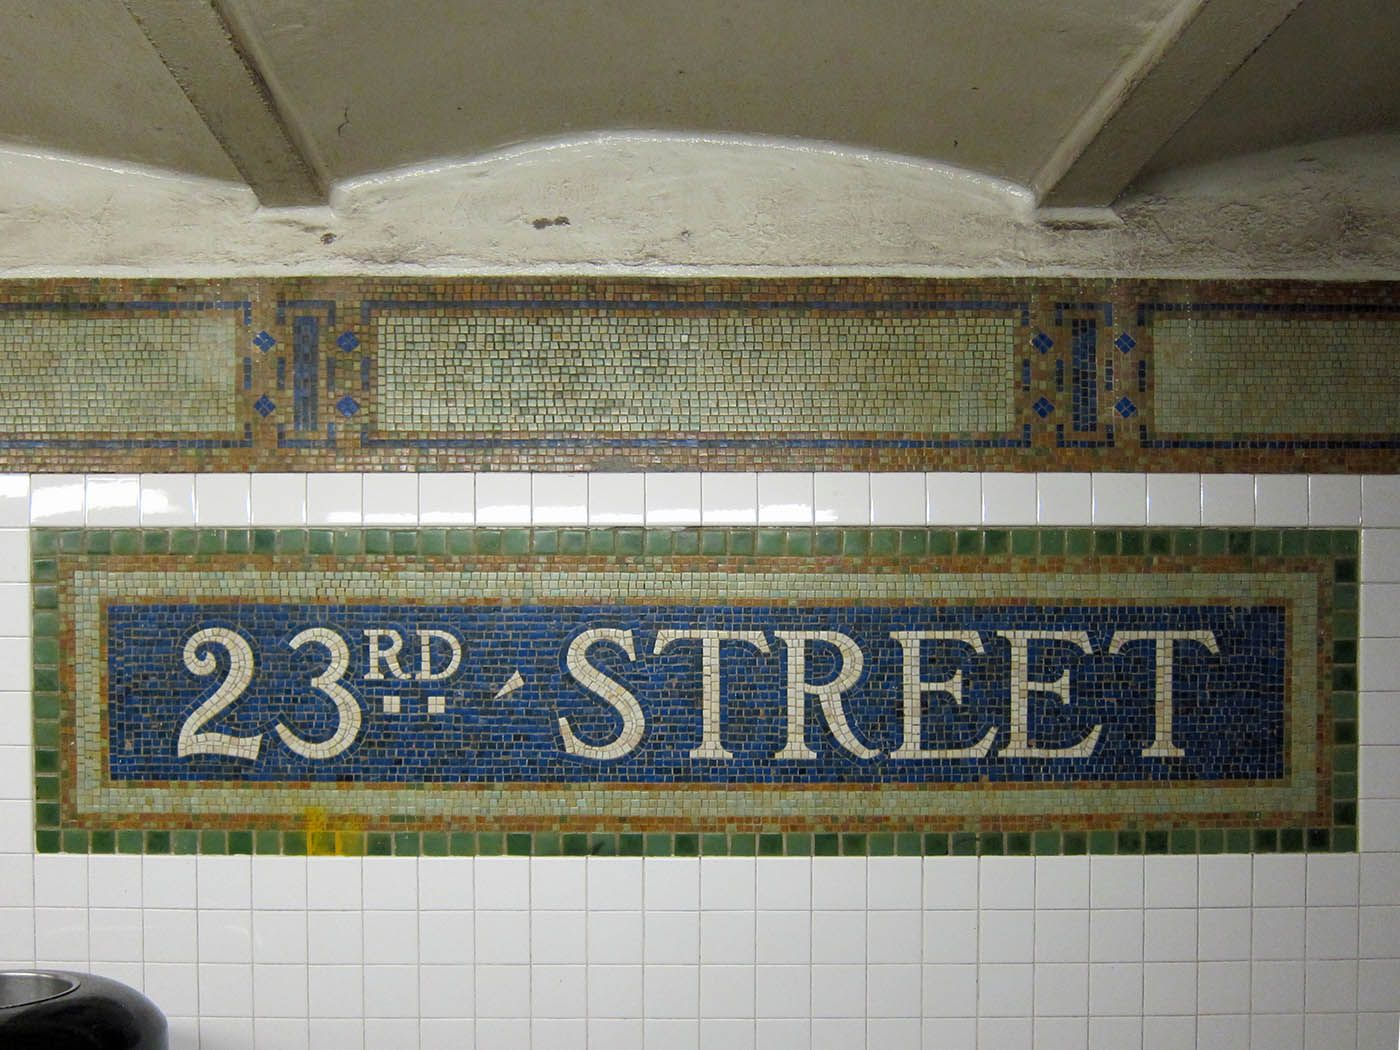 23rd street station typography pinterest subway tile patterns 23rd street station dailygadgetfo Choice Image